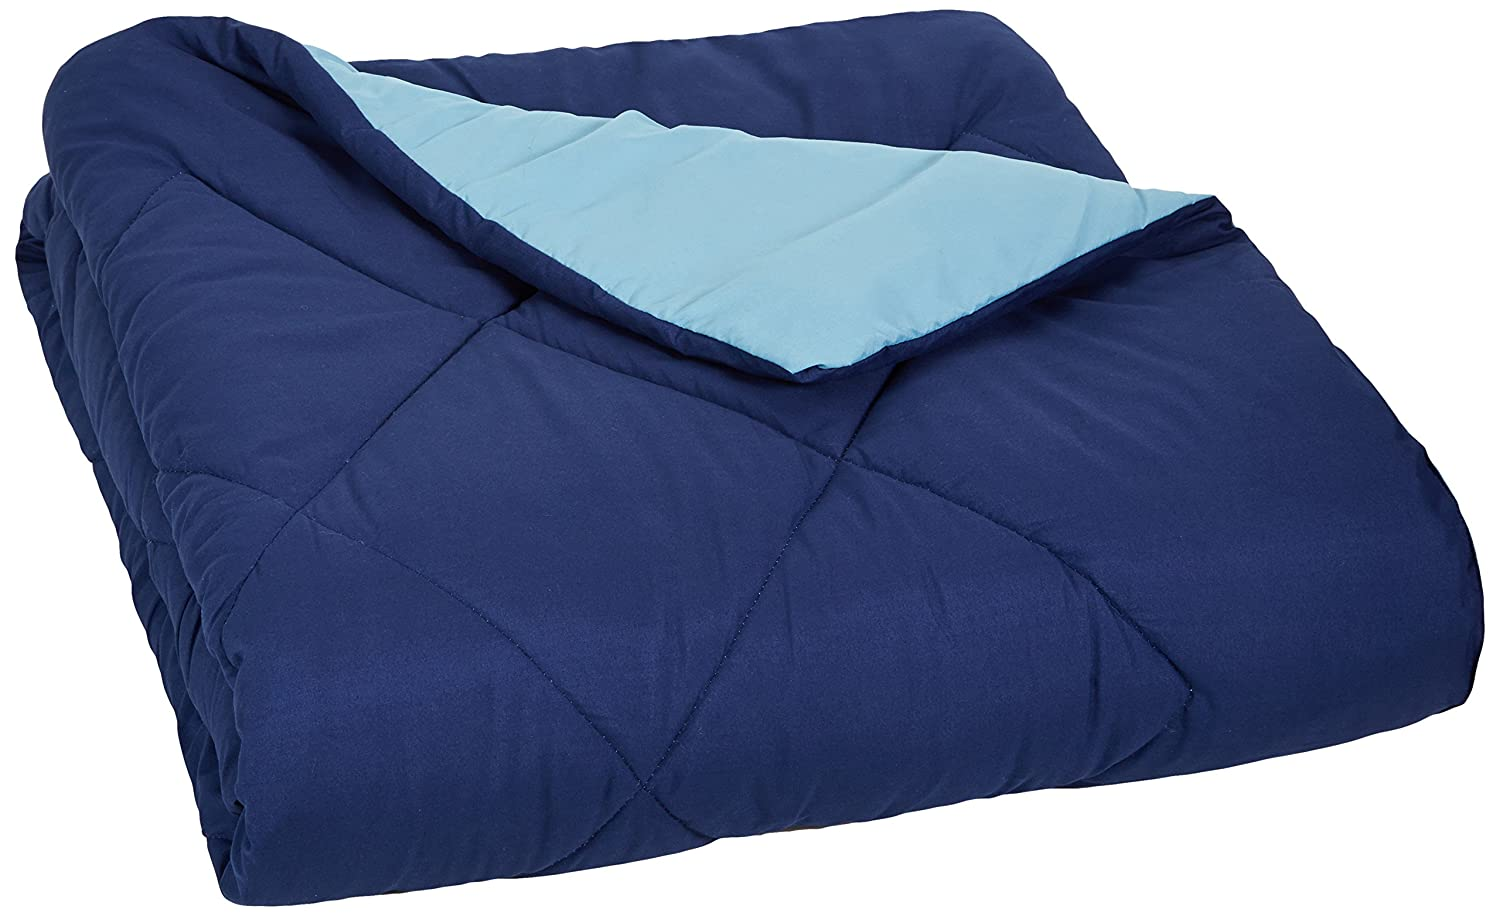 AmazonBasics Reversible Microfiber Comforter - Twin/Twin Extra-Long, Navy Blue